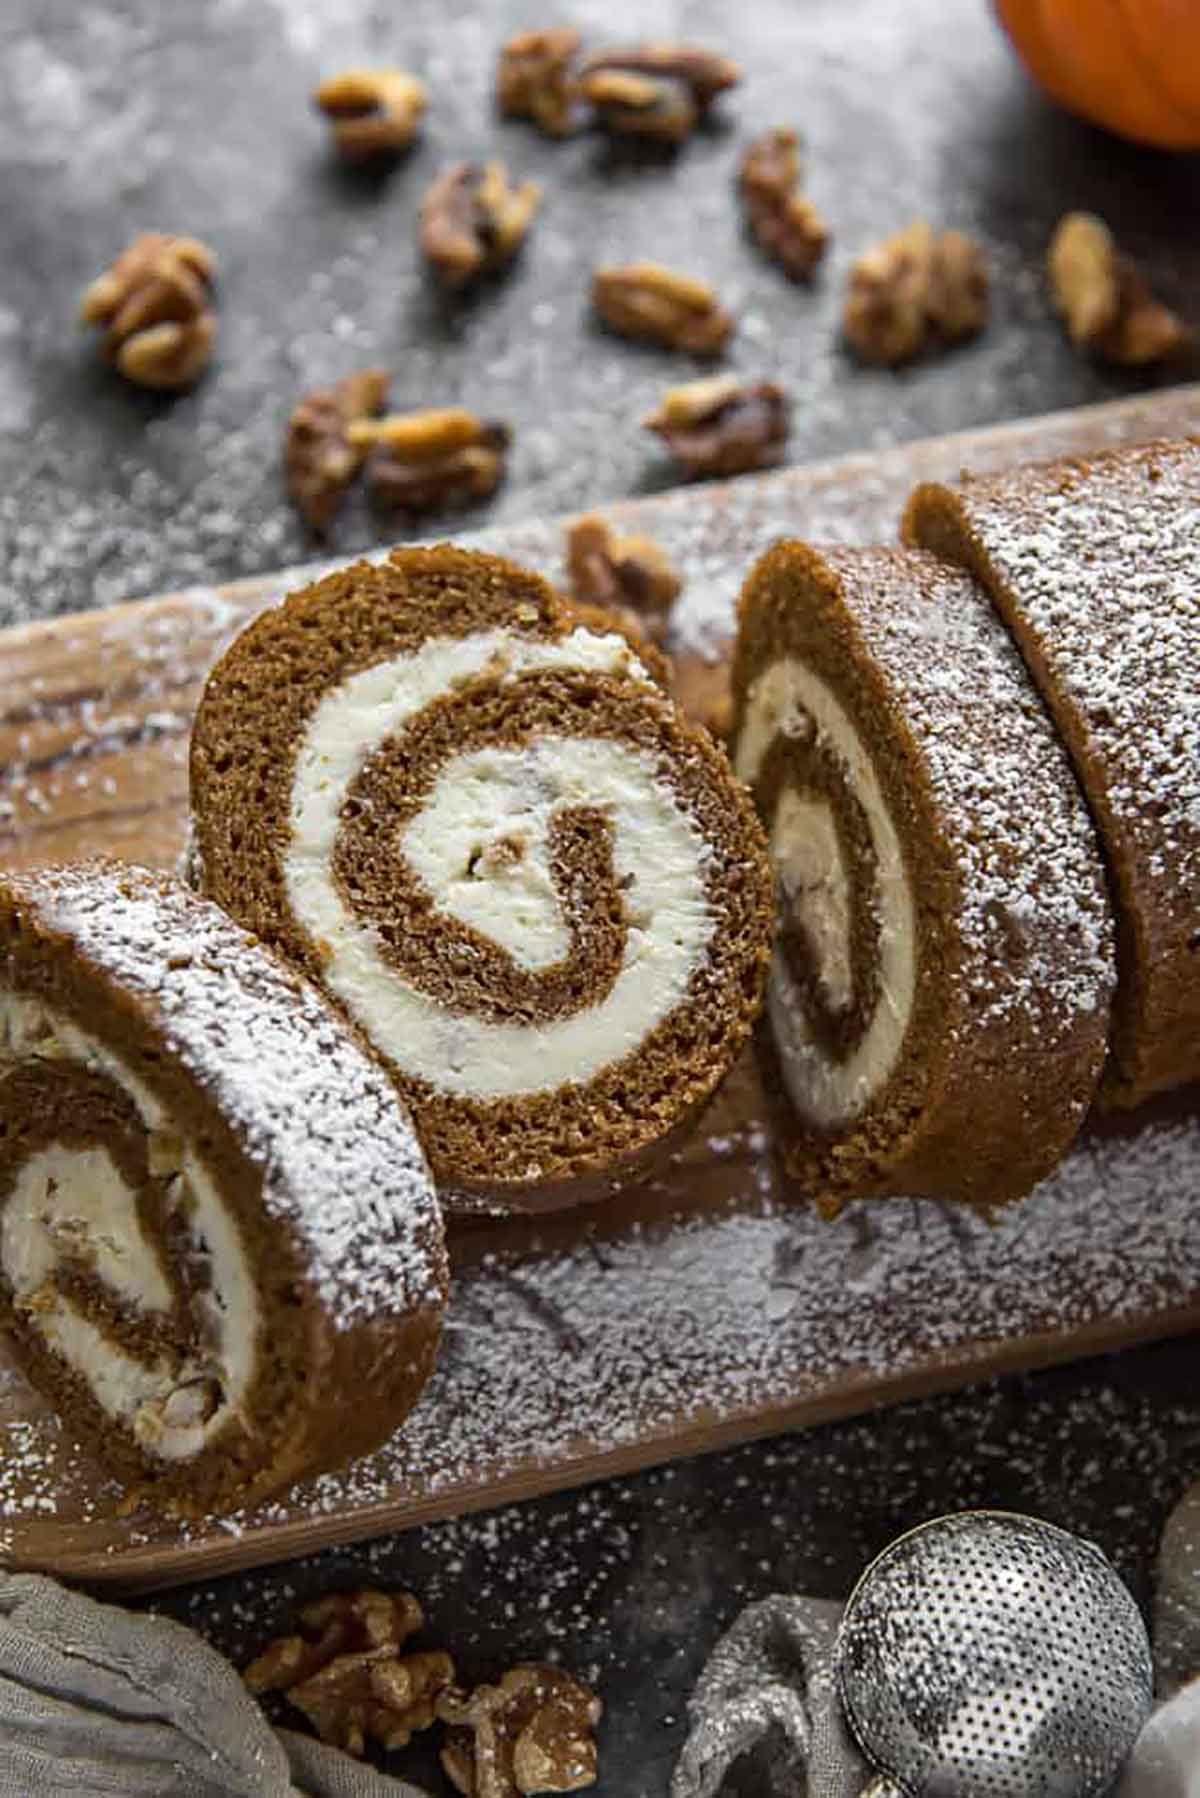 A sliced pumpkin roll on a wooden board, sprinkled with sugar.